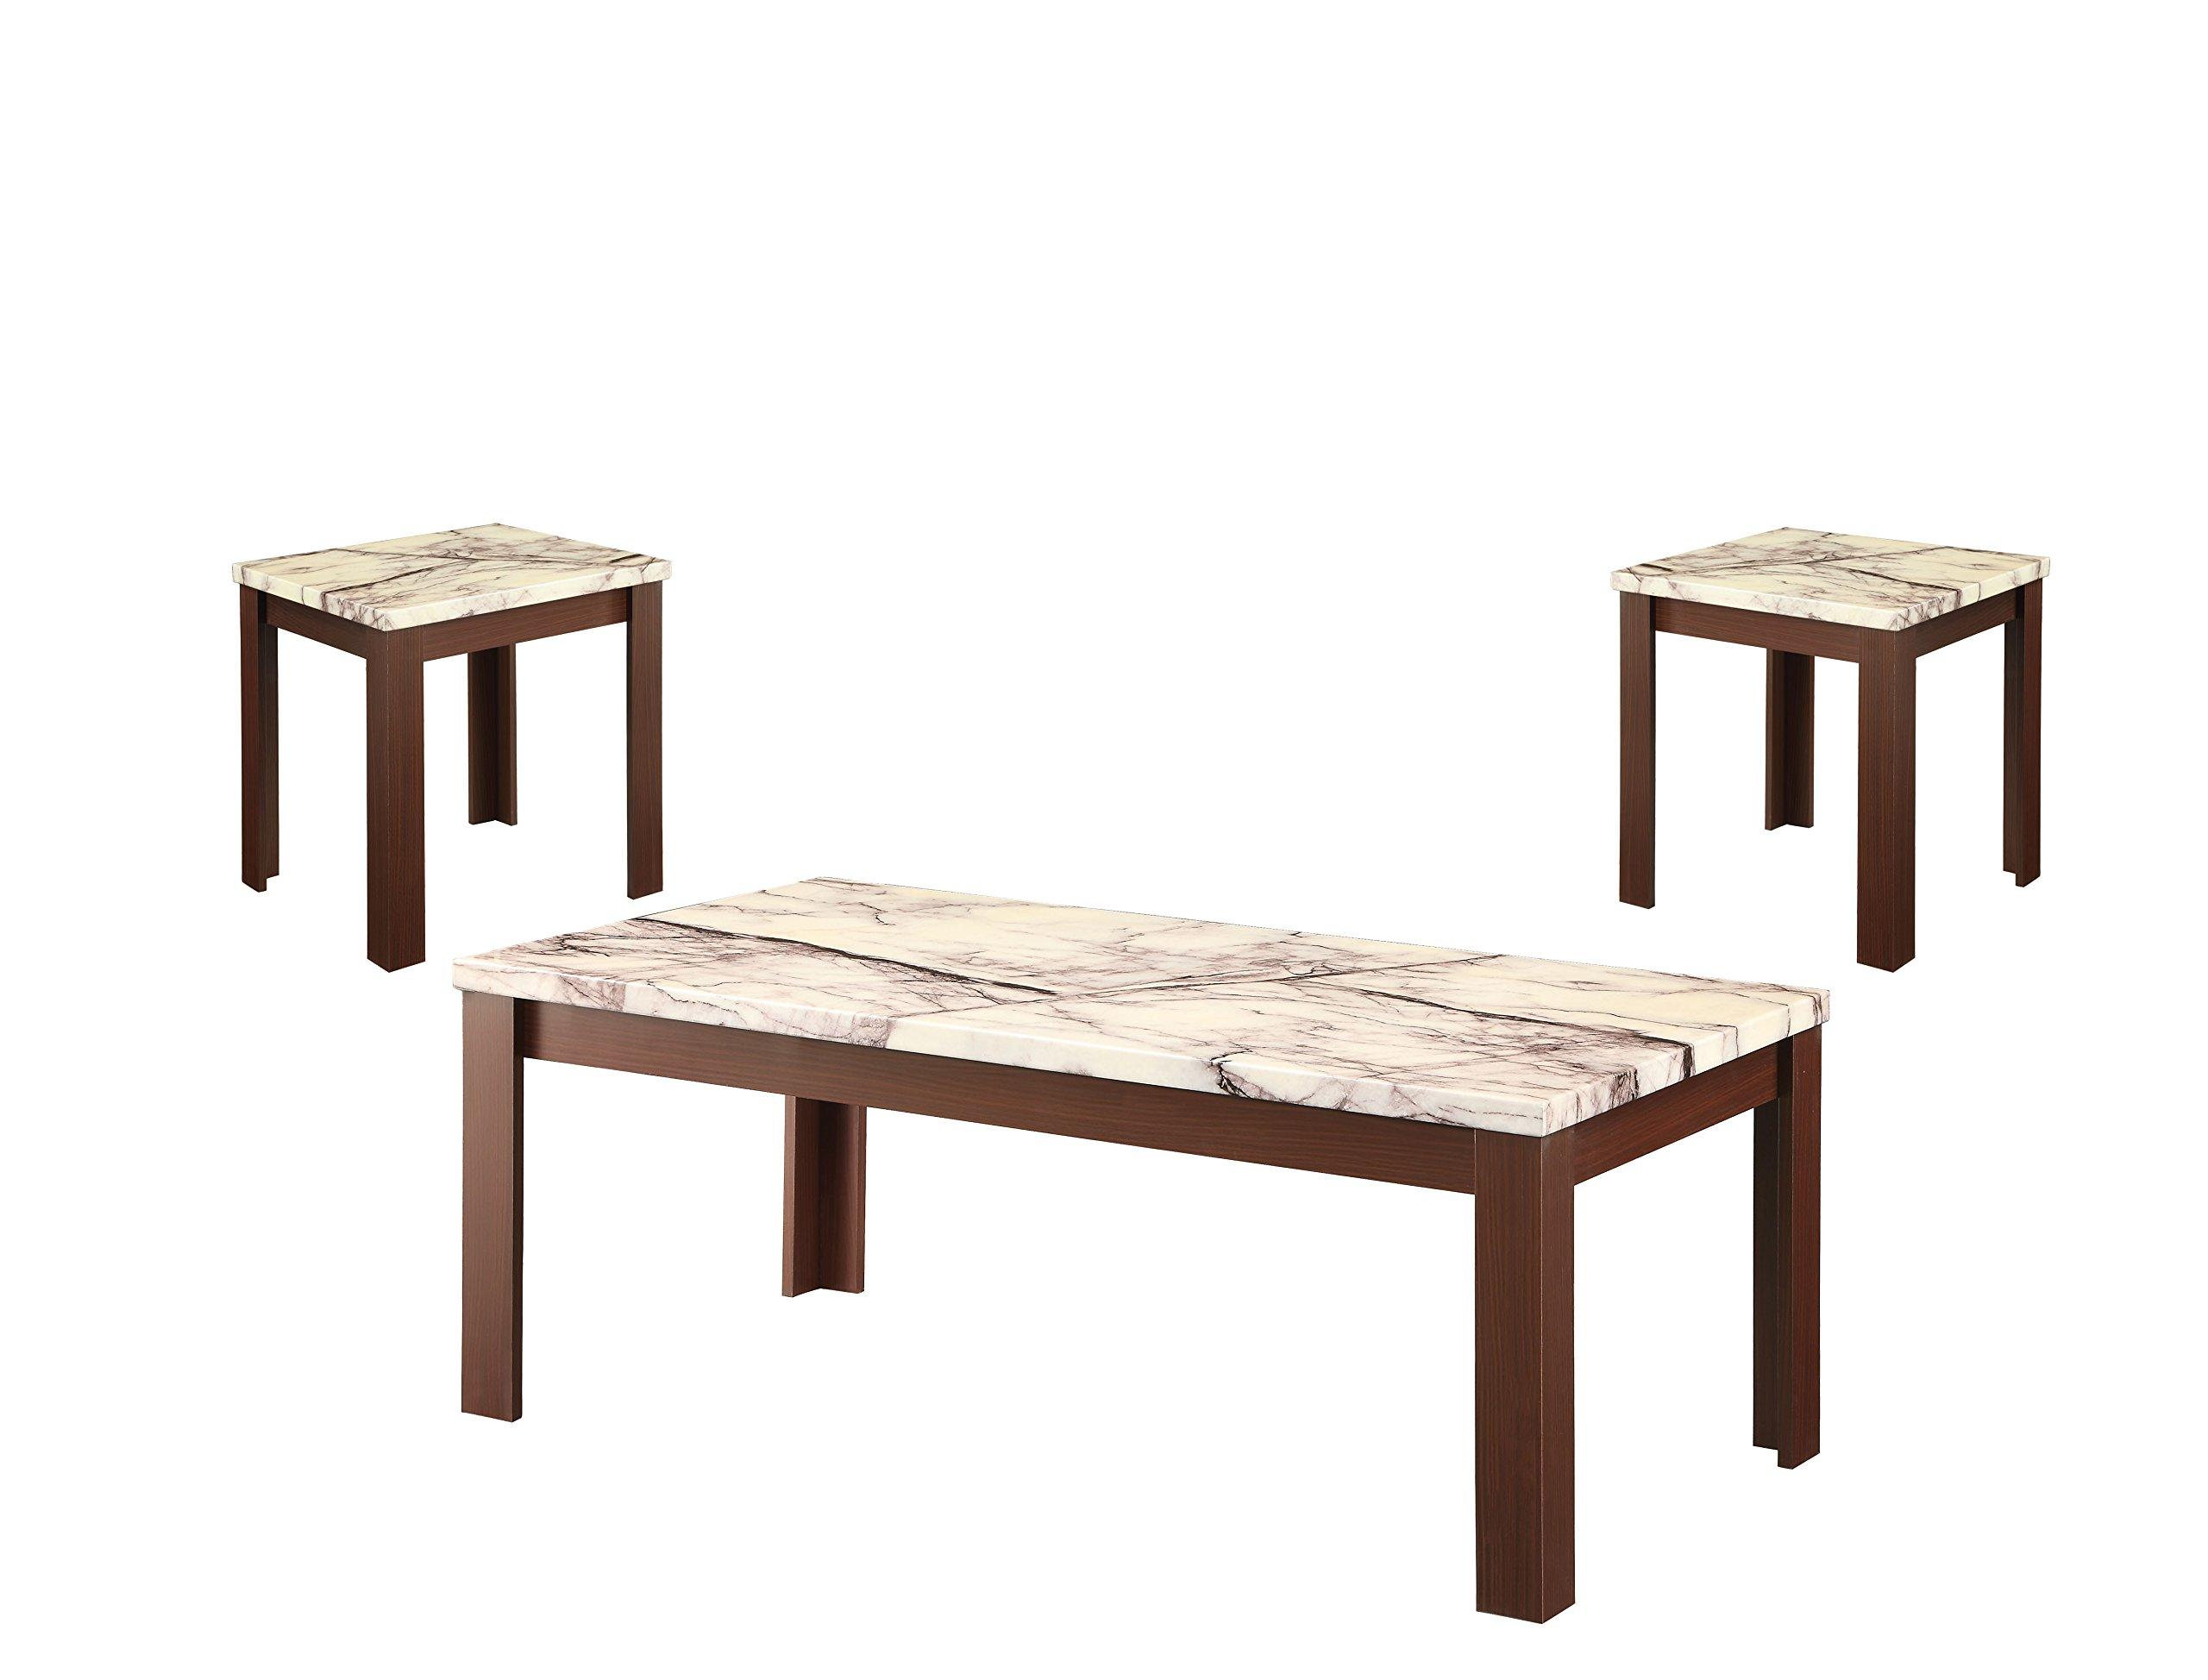 Acme 3 Piece Carly Coffee/End Table Set, Faux Marble & Cherry by Acme Furniture